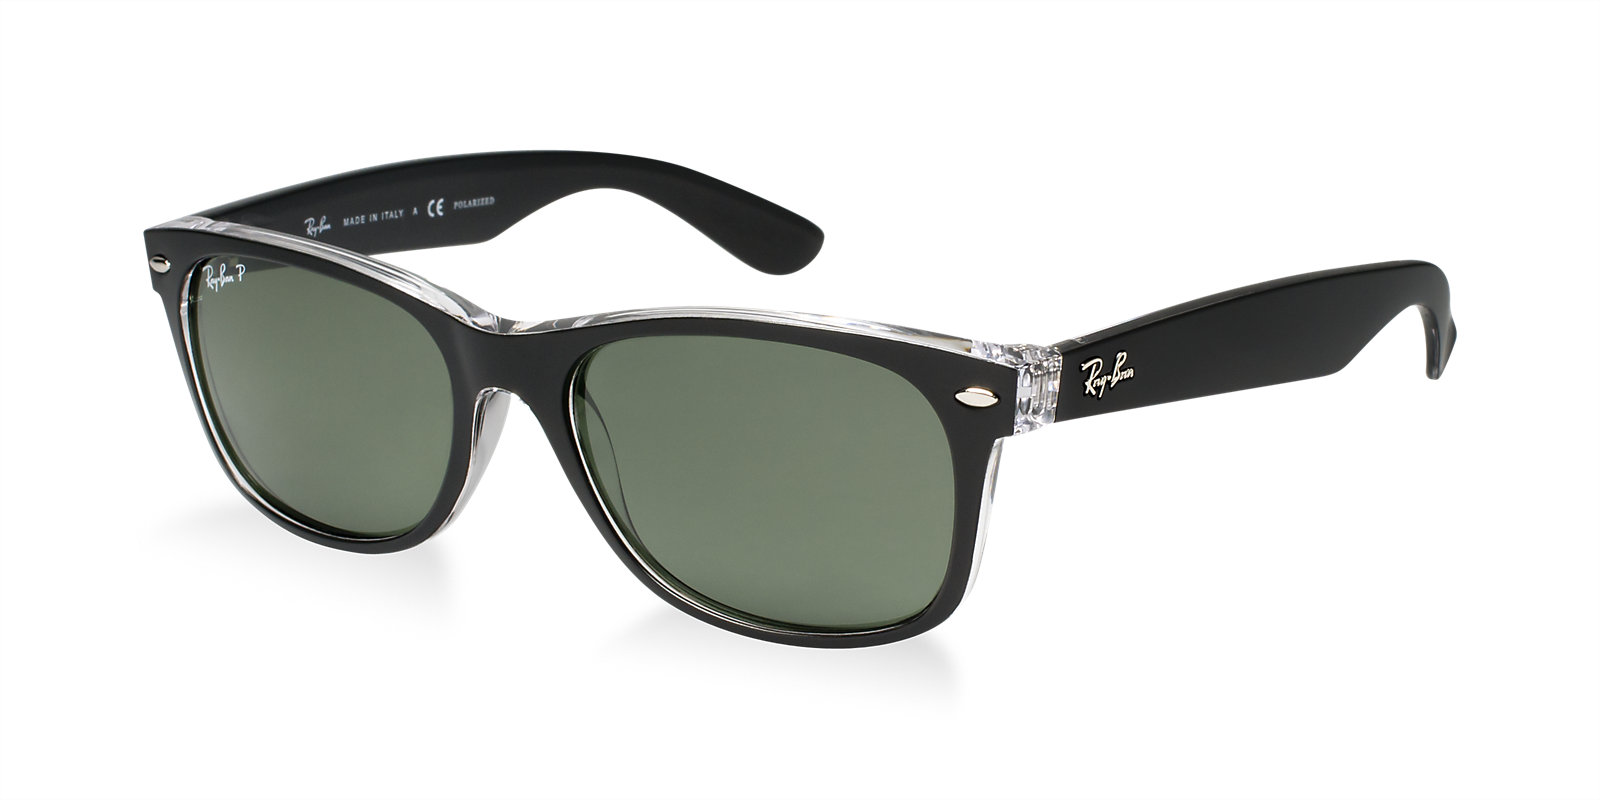 ab794bb2e3b Previous  Next. Previous  Next. RAY-BAN RB2132 605258 POLARIZED NEW  WAYFARER SUNGLASSES